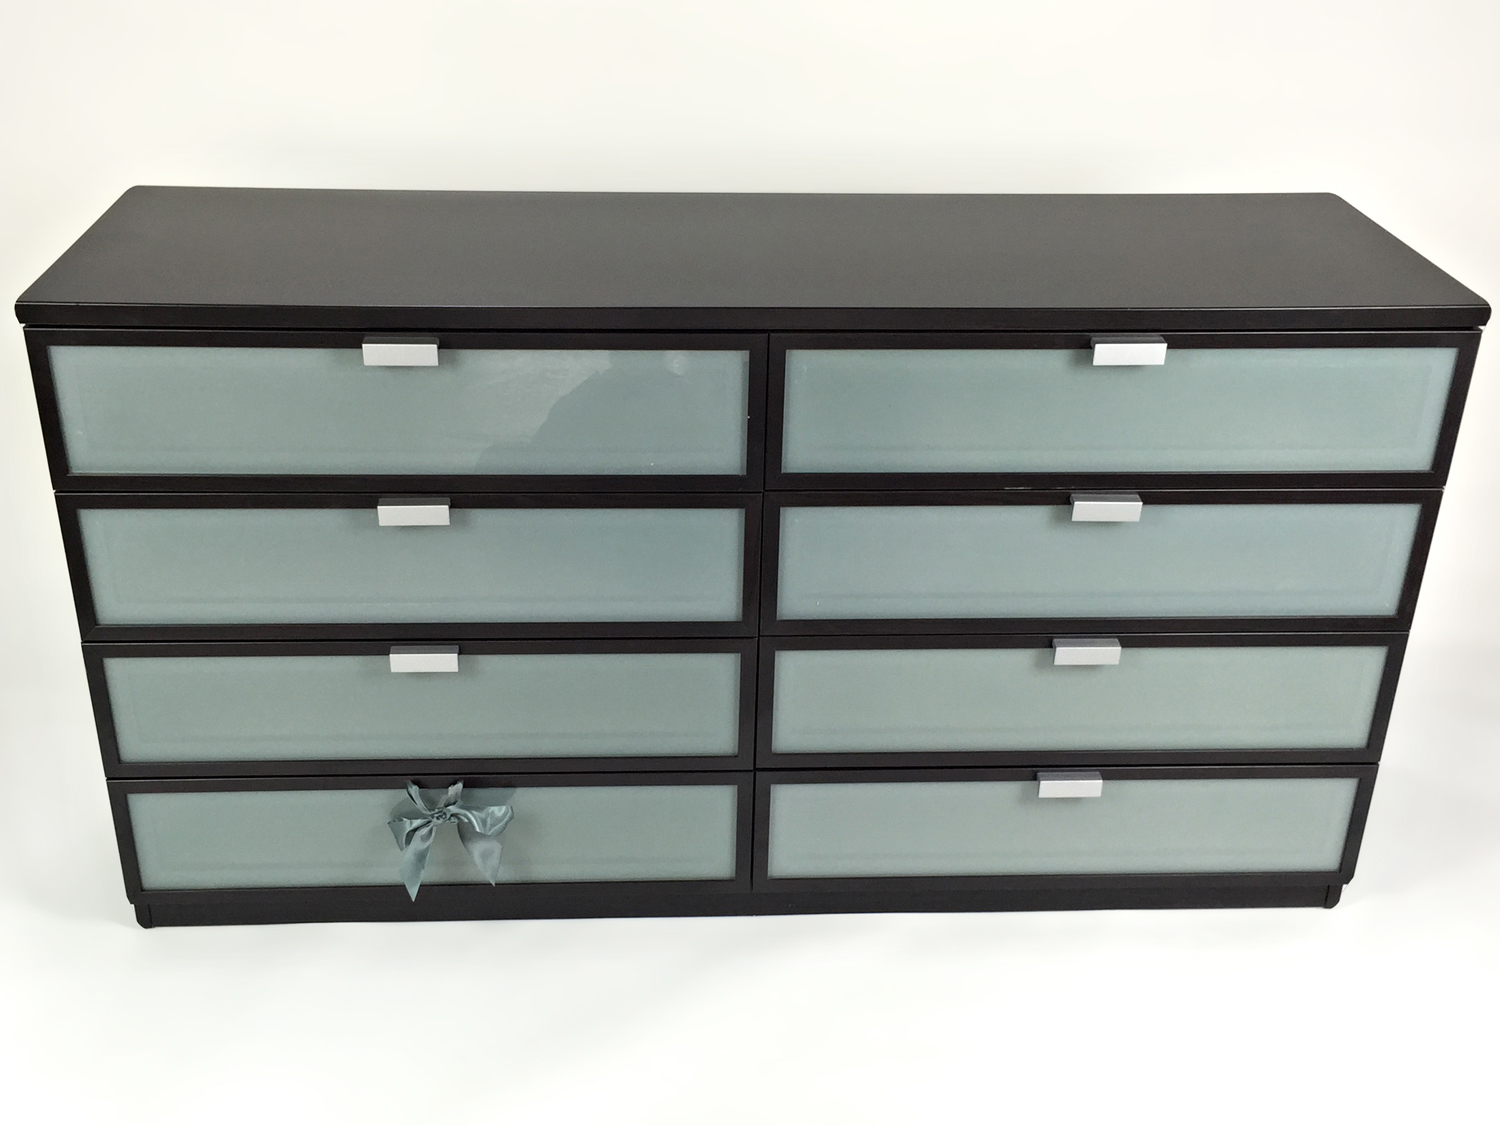 50 off ikea ikea hopen dresser storage. Black Bedroom Furniture Sets. Home Design Ideas